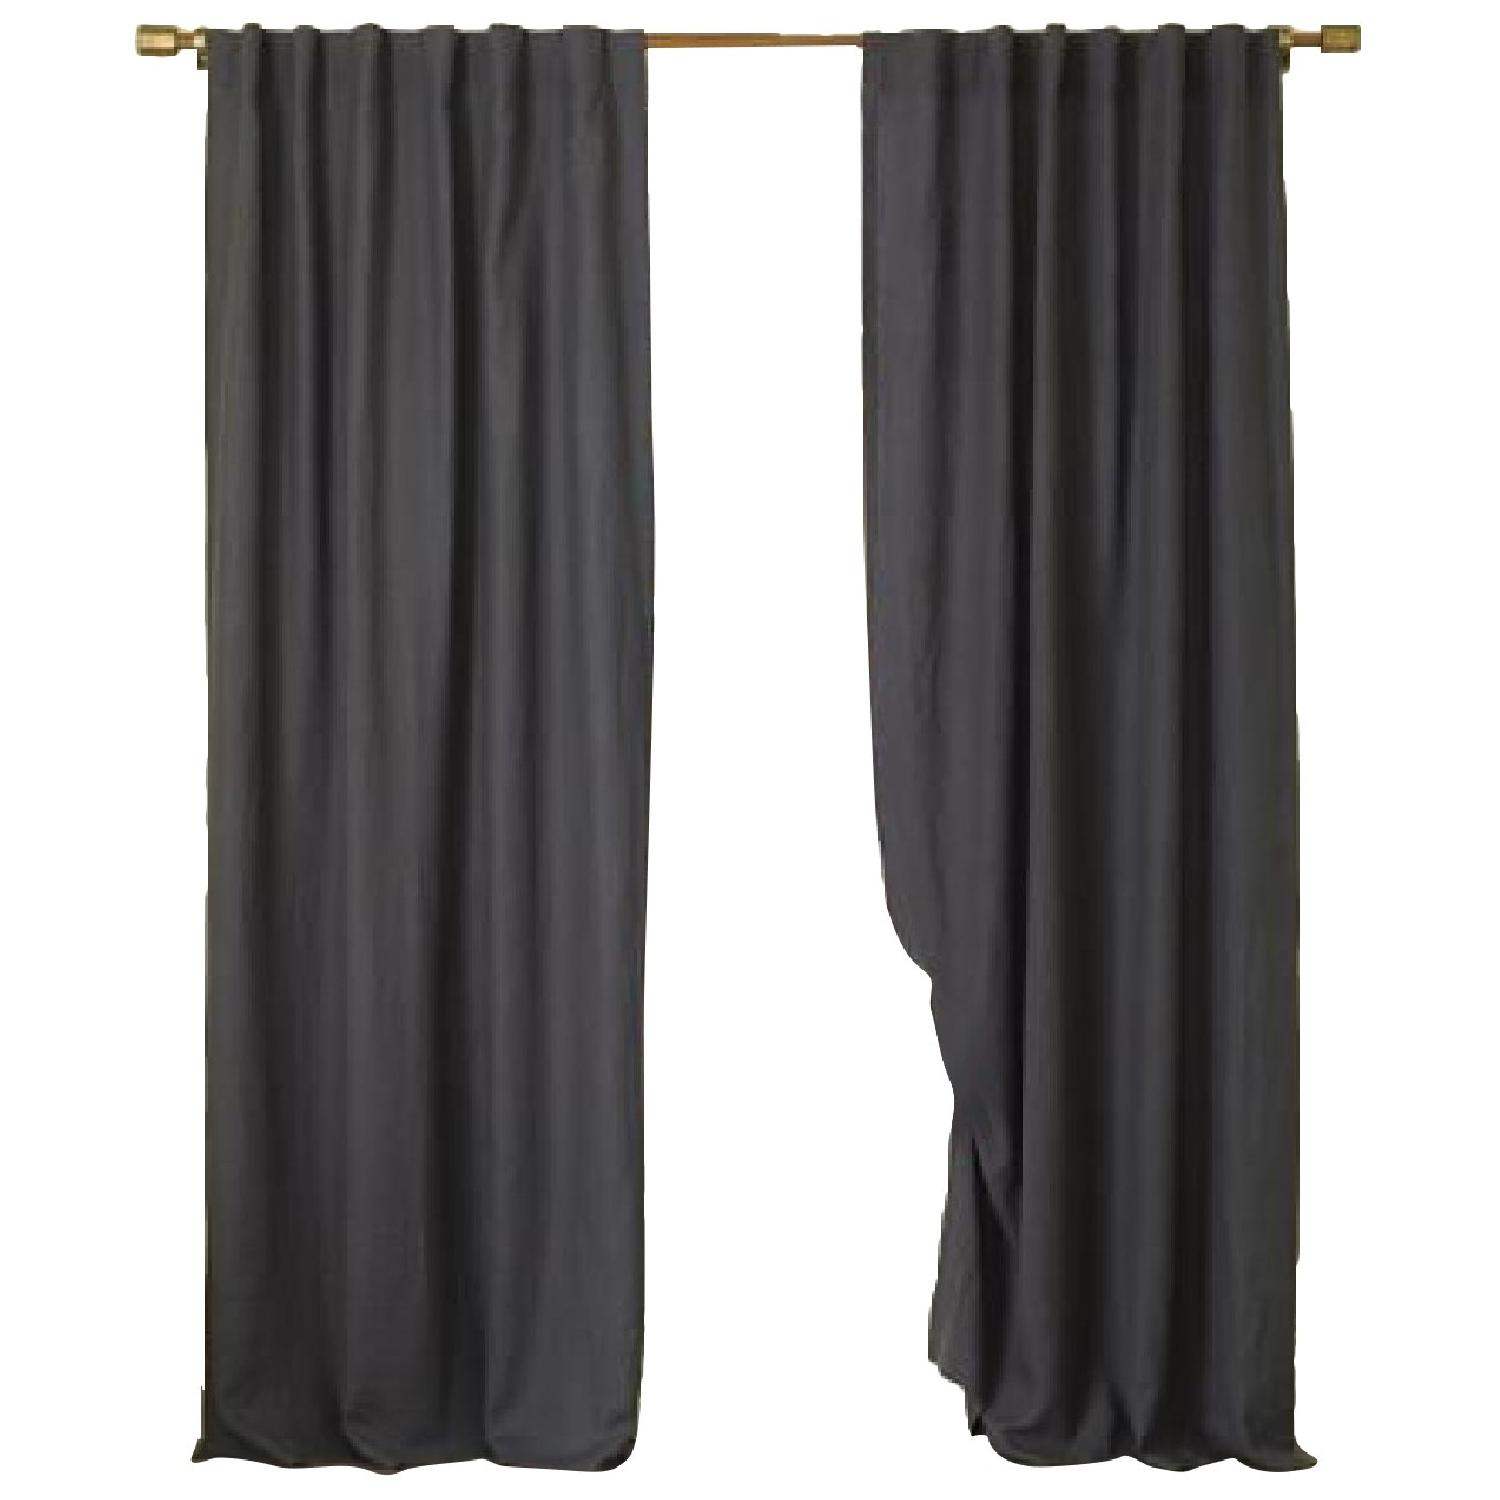 West Elm Belgian Linen Blackout Curtains w/ CB2 Curtain Rod